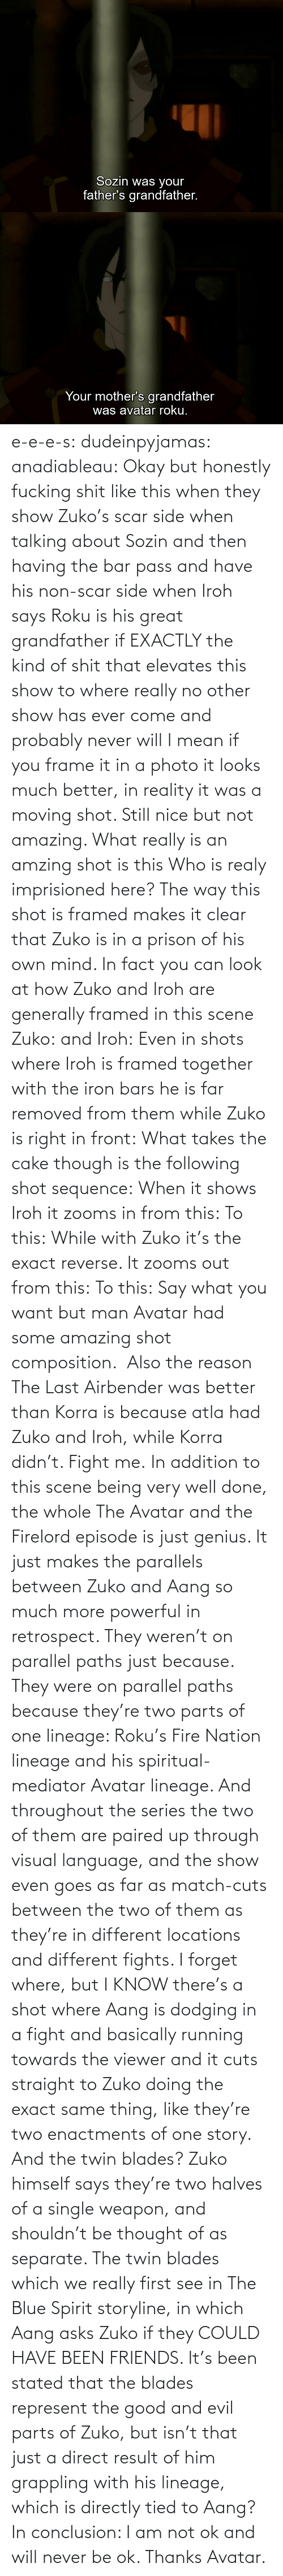 Running: e-e-e-s: dudeinpyjamas:   anadiableau: Okay but honestly fucking shit like this when they show Zuko's scar side when talking about Sozin and then having the bar pass and have his non-scar side when Iroh says Roku is his great grandfather if EXACTLY the kind of shit that elevates this show to where really no other show has ever come and probably never will I mean if you frame it in a photo it looks much better, in reality it was a moving shot. Still nice but not amazing. What really is an amzing shot is this Who is realy imprisioned here? The way this shot is framed makes it clear that Zuko is in a prison of his own mind. In fact you can look at how Zuko and Iroh are generally framed in this scene Zuko: and Iroh: Even in shots where Iroh is framed together with the iron bars he is far removed from them while Zuko is right in front:  What takes the cake though is the following shot sequence: When it shows Iroh it zooms in from this: To this: While with Zuko it's the exact reverse. It zooms out from this: To this: Say what you want but man Avatar had some amazing shot composition.   Also the reason The Last Airbender was better than Korra is because atla had Zuko and Iroh, while Korra didn't. Fight me.    In addition to this scene being very well done, the whole The Avatar and the Firelord episode is just genius.  It just makes the parallels between Zuko and Aang so much more powerful in retrospect.  They weren't on parallel paths just because.  They were on parallel paths because they're two parts of one lineage: Roku's Fire Nation lineage and his spiritual-mediator Avatar lineage.  And throughout the series the two of them are paired up through visual language, and the show even goes as far as match-cuts between the two of them as they're in different locations and different fights.  I forget where, but I KNOW there's a shot where Aang is dodging in a fight and basically running towards the viewer and it cuts straight to Zuko doing the exact same thing, like they're two enactments of one story.   And the twin blades?  Zuko himself says they're two halves of a single weapon, and shouldn't be thought of as separate.  The twin blades which we really first see in The Blue Spirit storyline, in which Aang asks Zuko if they COULD HAVE BEEN FRIENDS.  It's been stated that the blades represent the good and evil parts of Zuko, but isn't that just a direct result of him grappling with his lineage, which is directly tied to Aang? In conclusion: I am not ok and will never be ok.  Thanks Avatar.